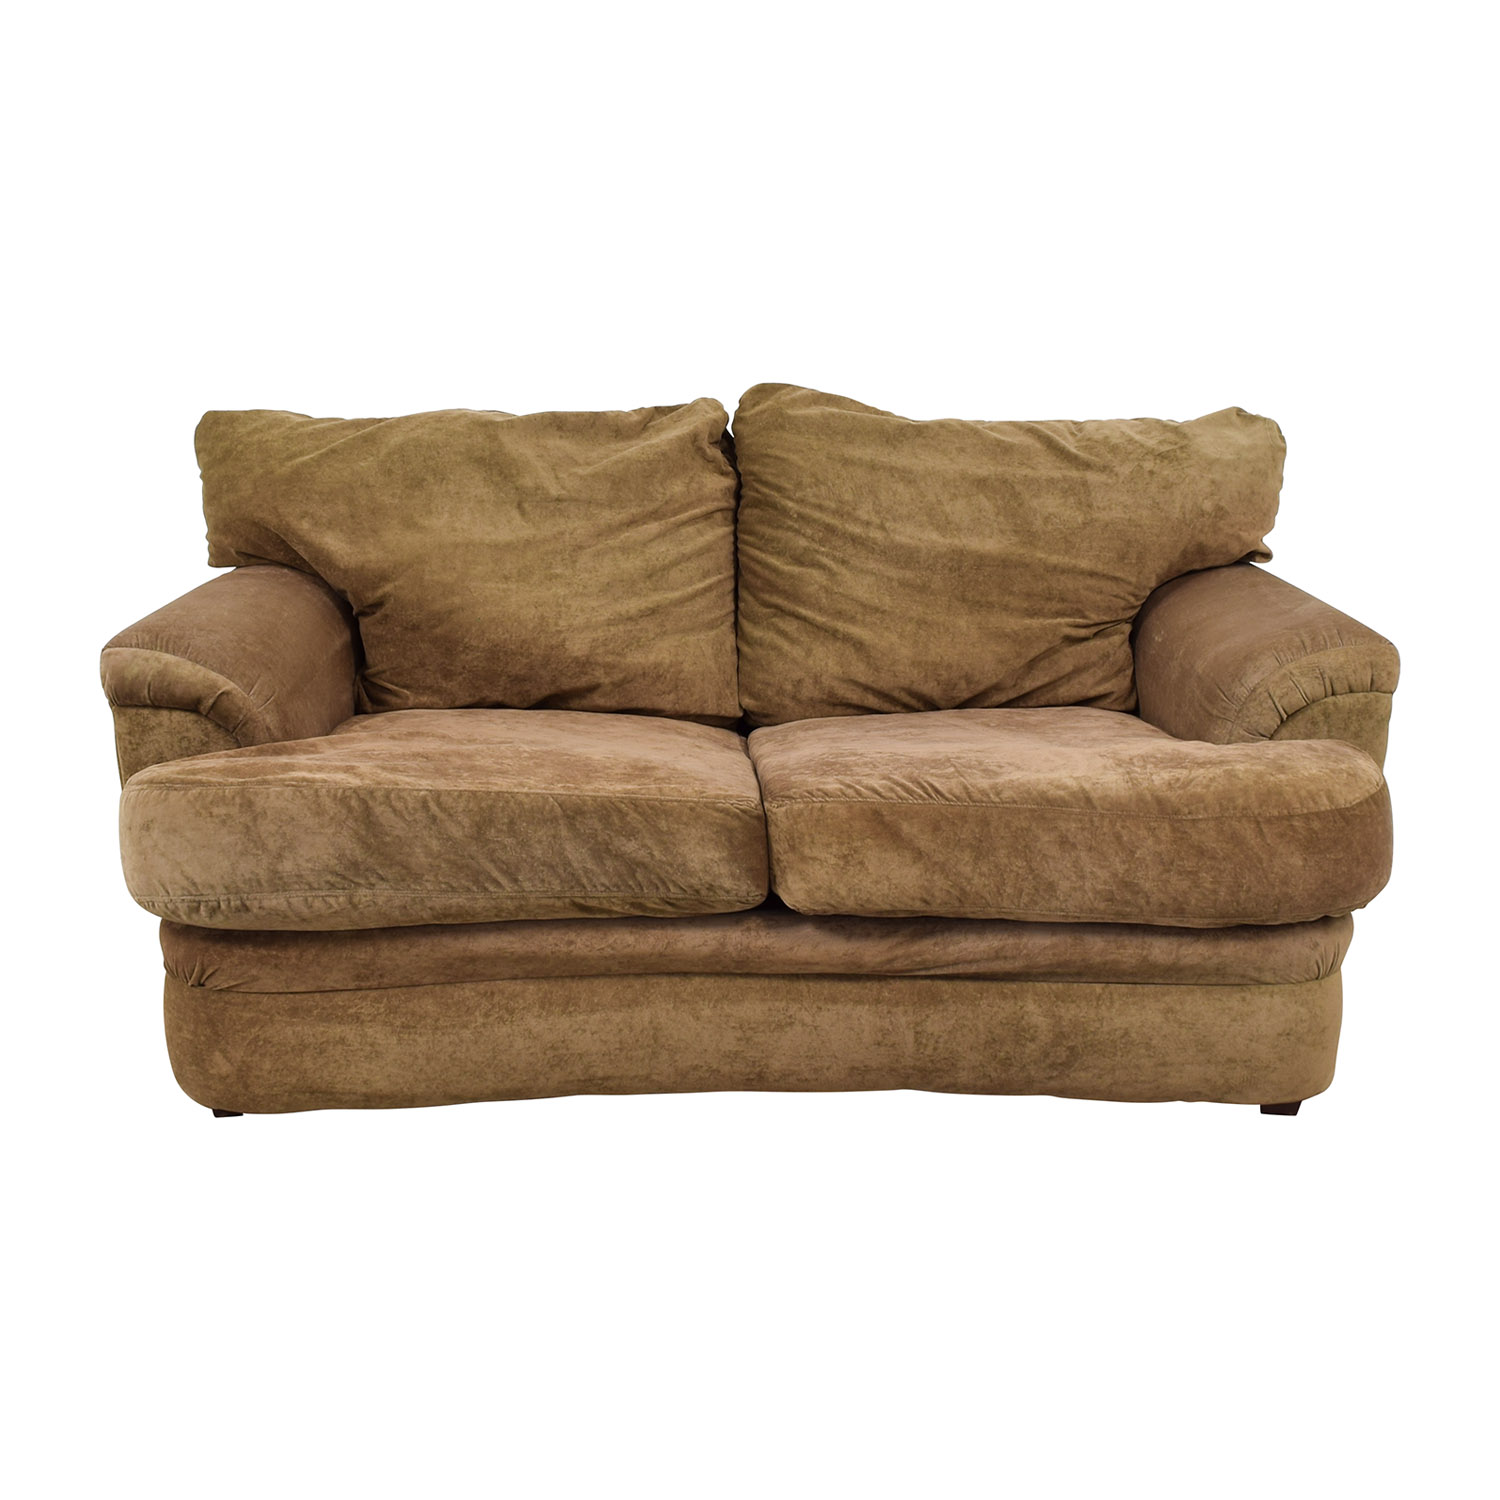 Alan White Alan White Loveseat dimensions